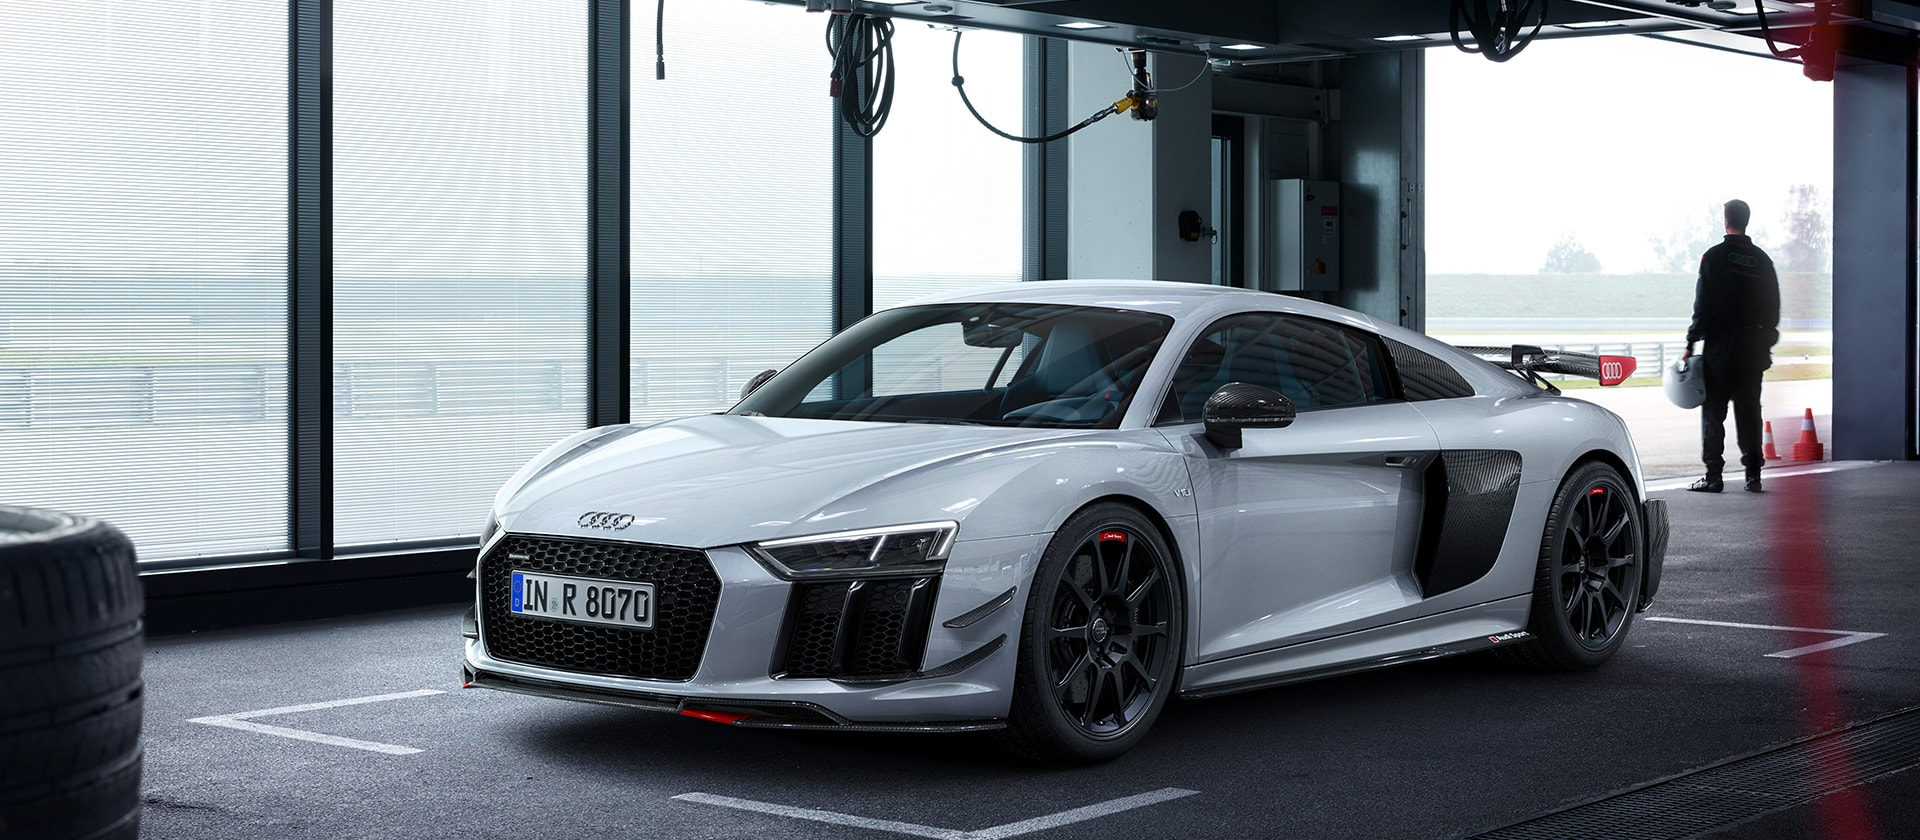 r8 coupé performance parts audi coma surplus in performance in the interior and exterior